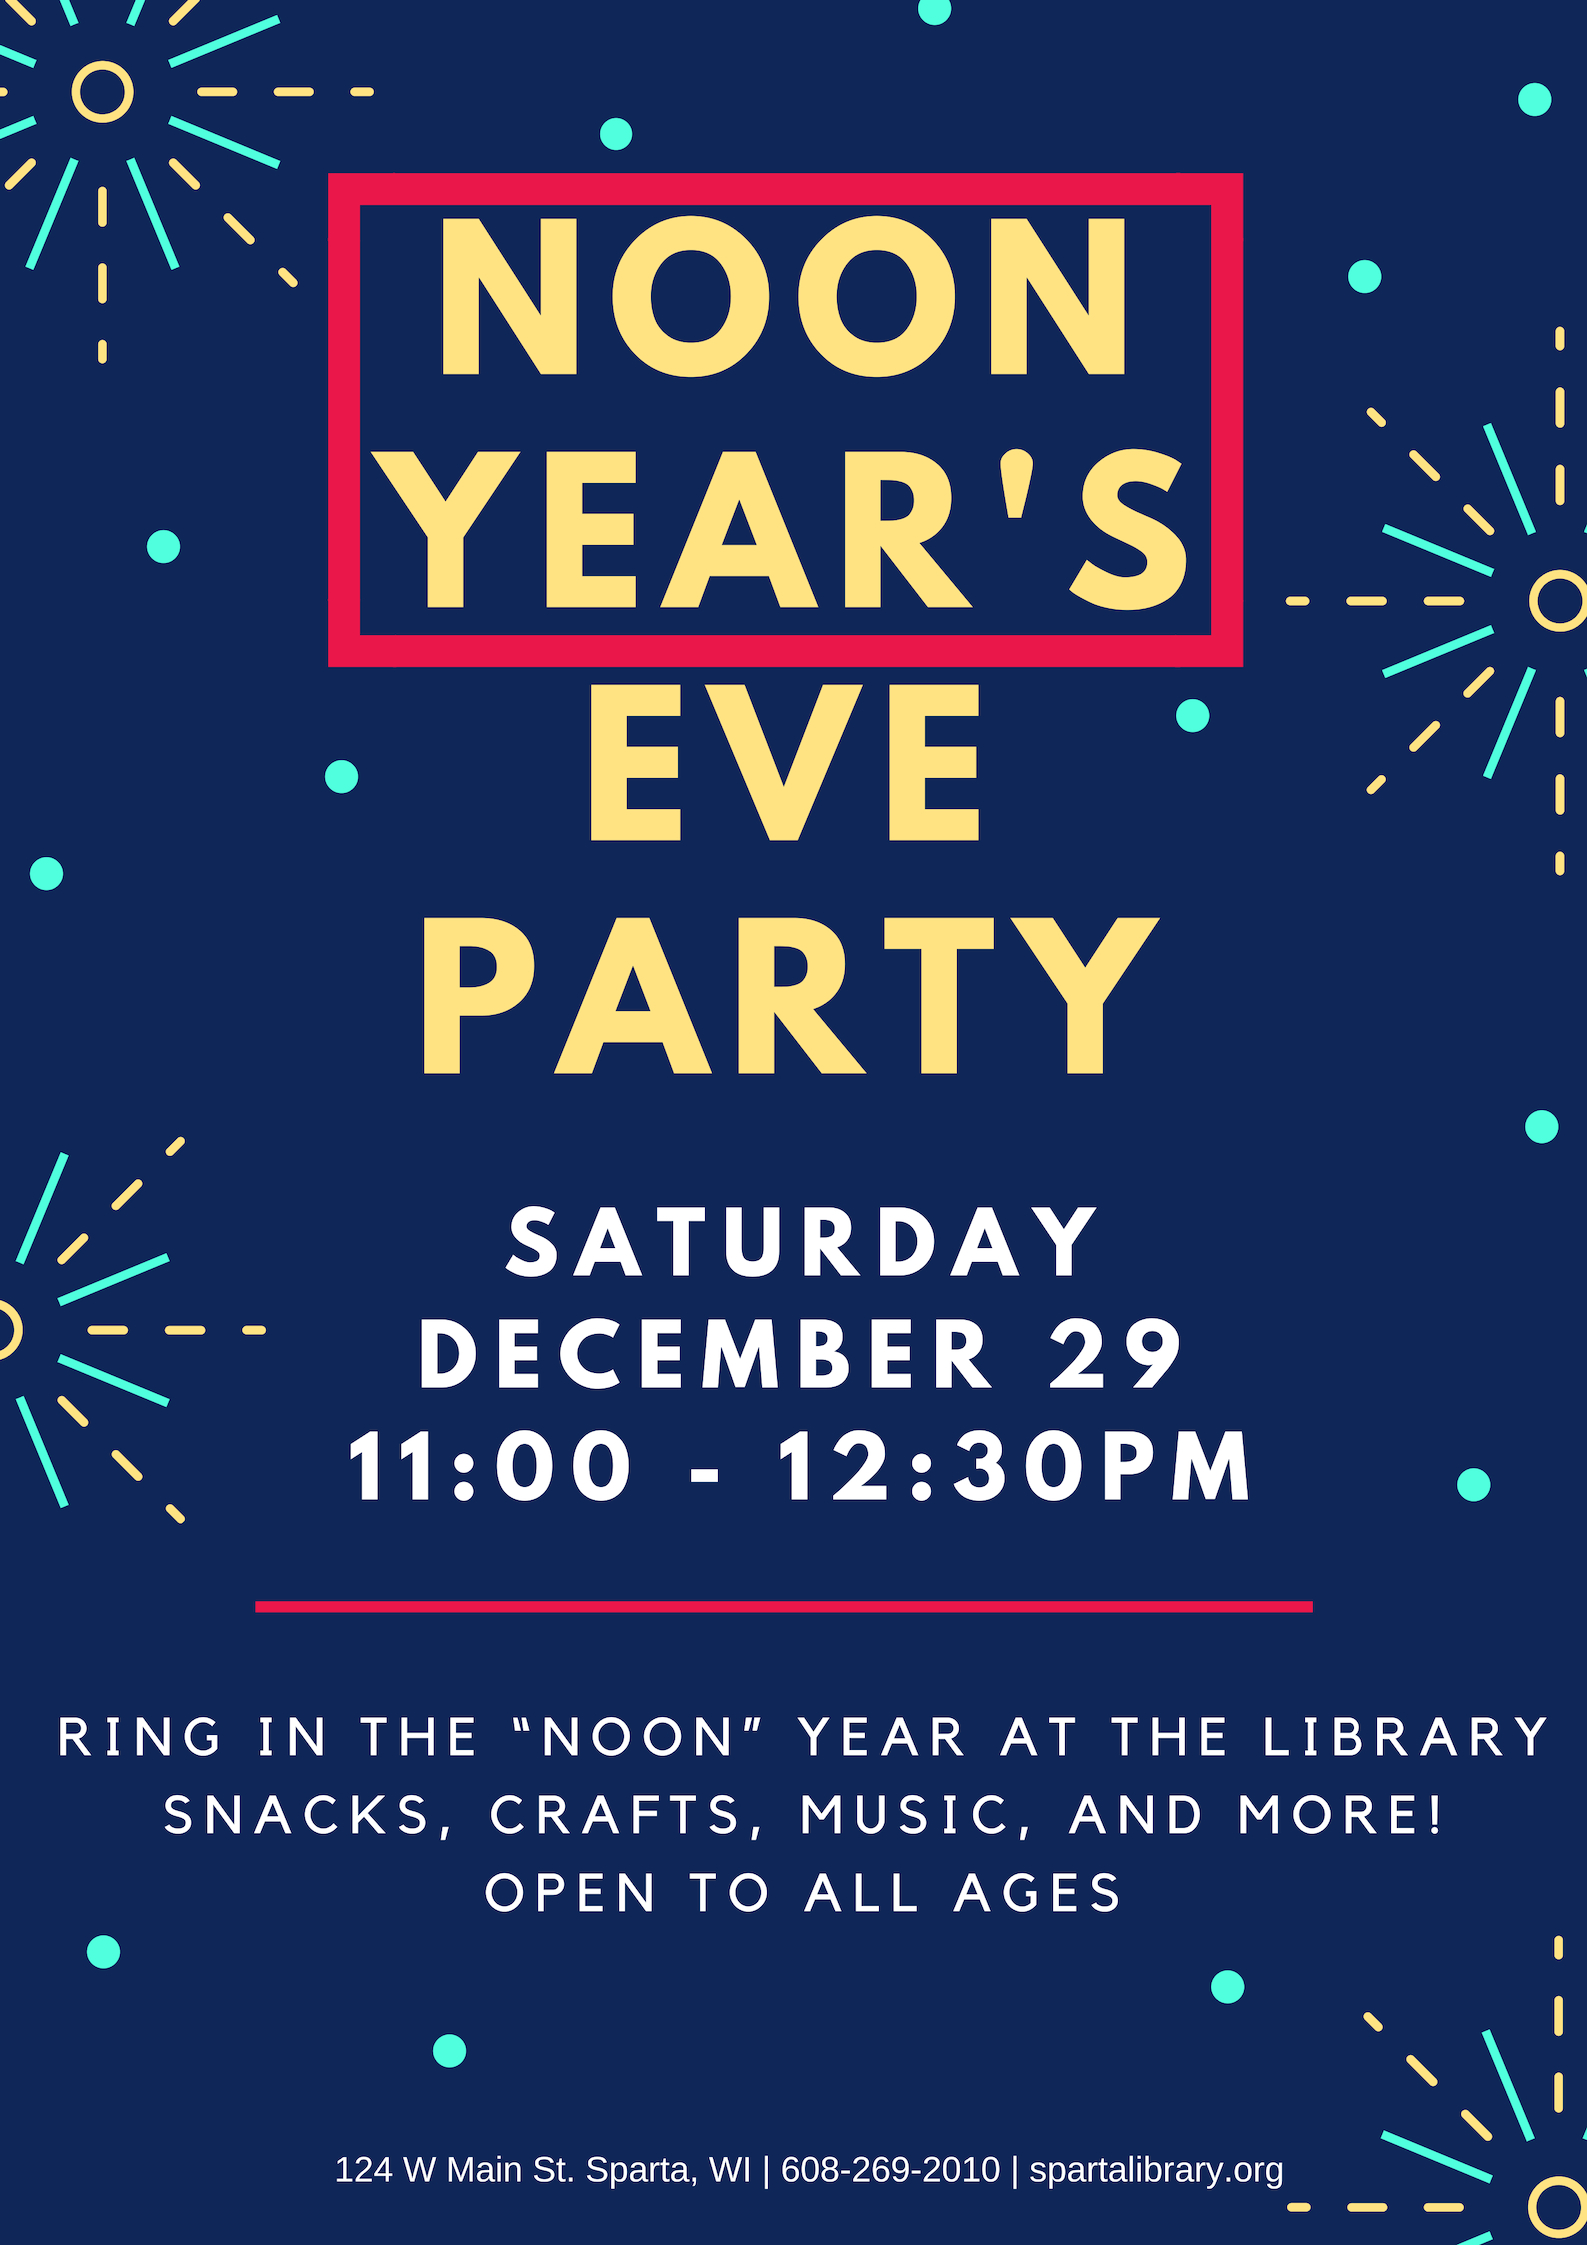 Noon Year's Eve Party Poster 2018